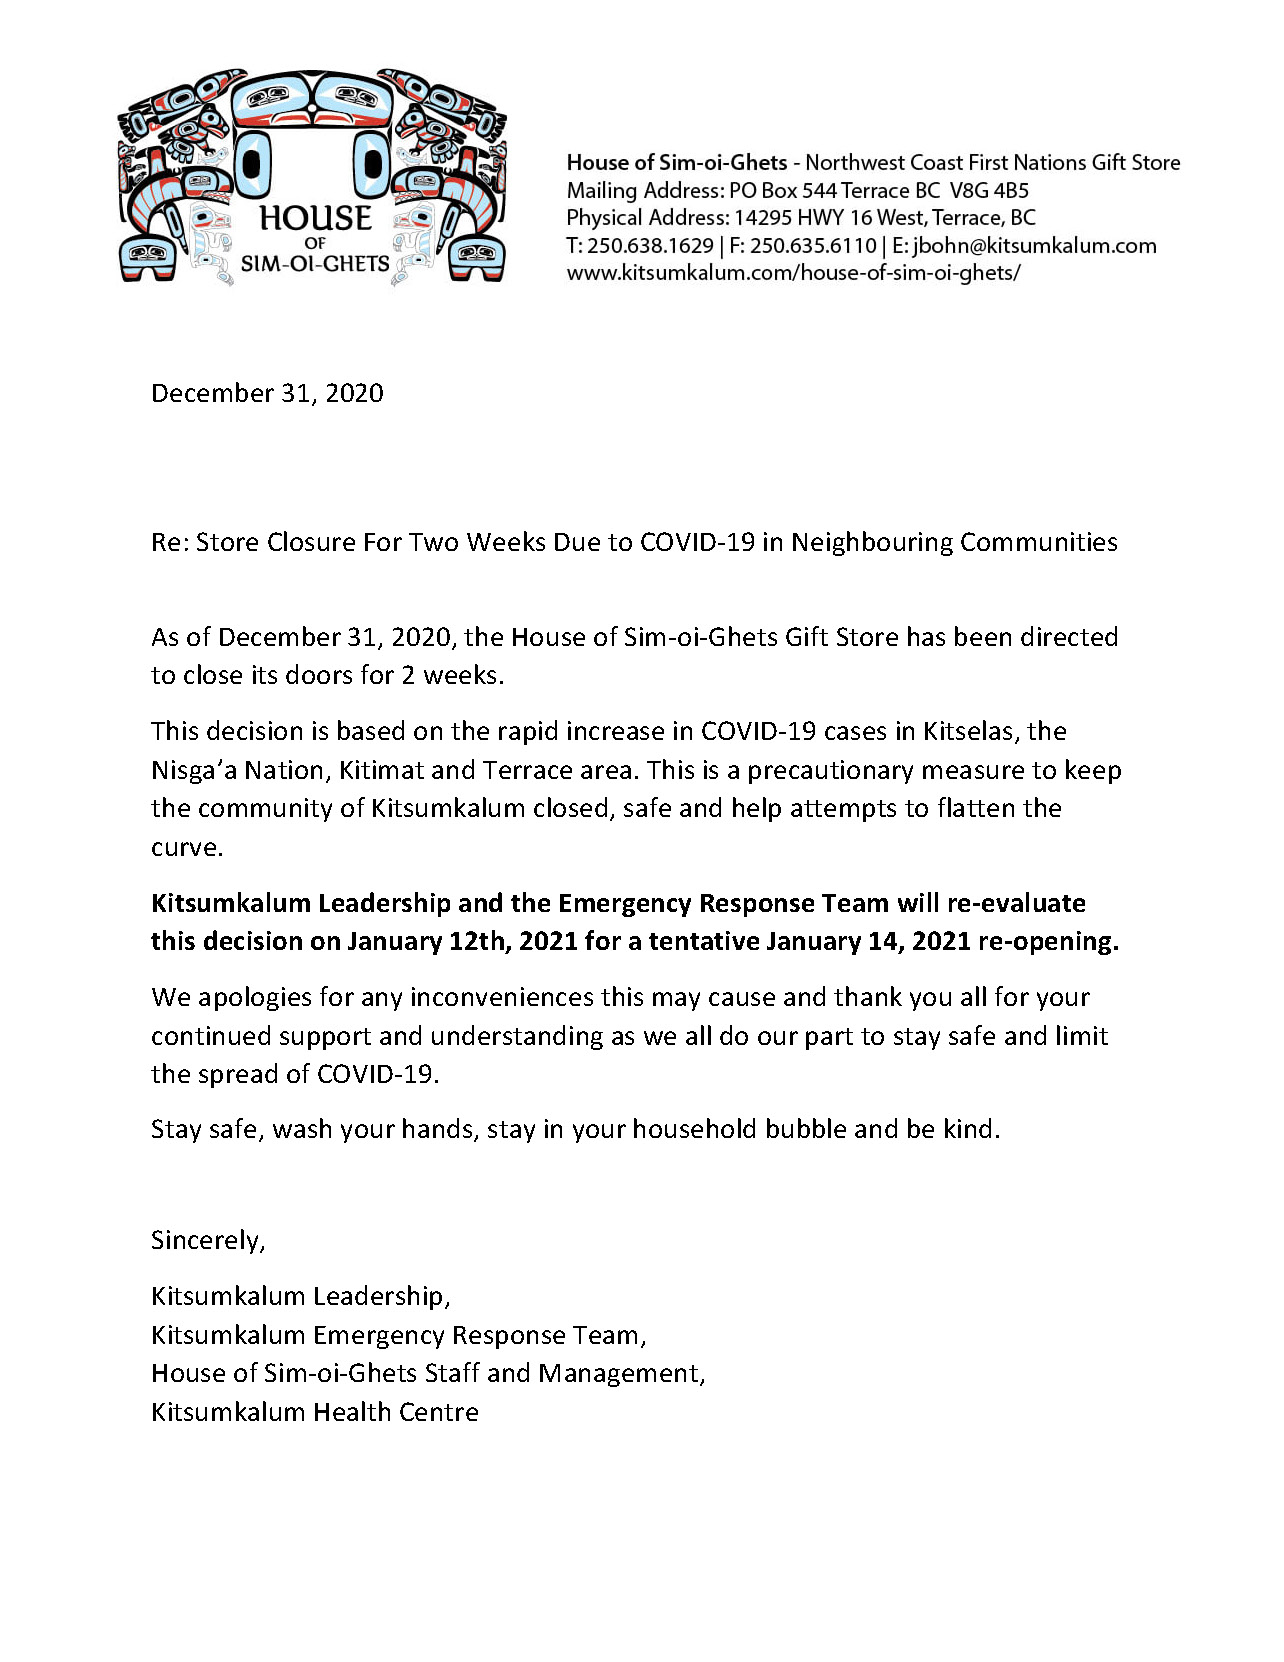 Notice of Closure for House of-Sim-oi-Ghets